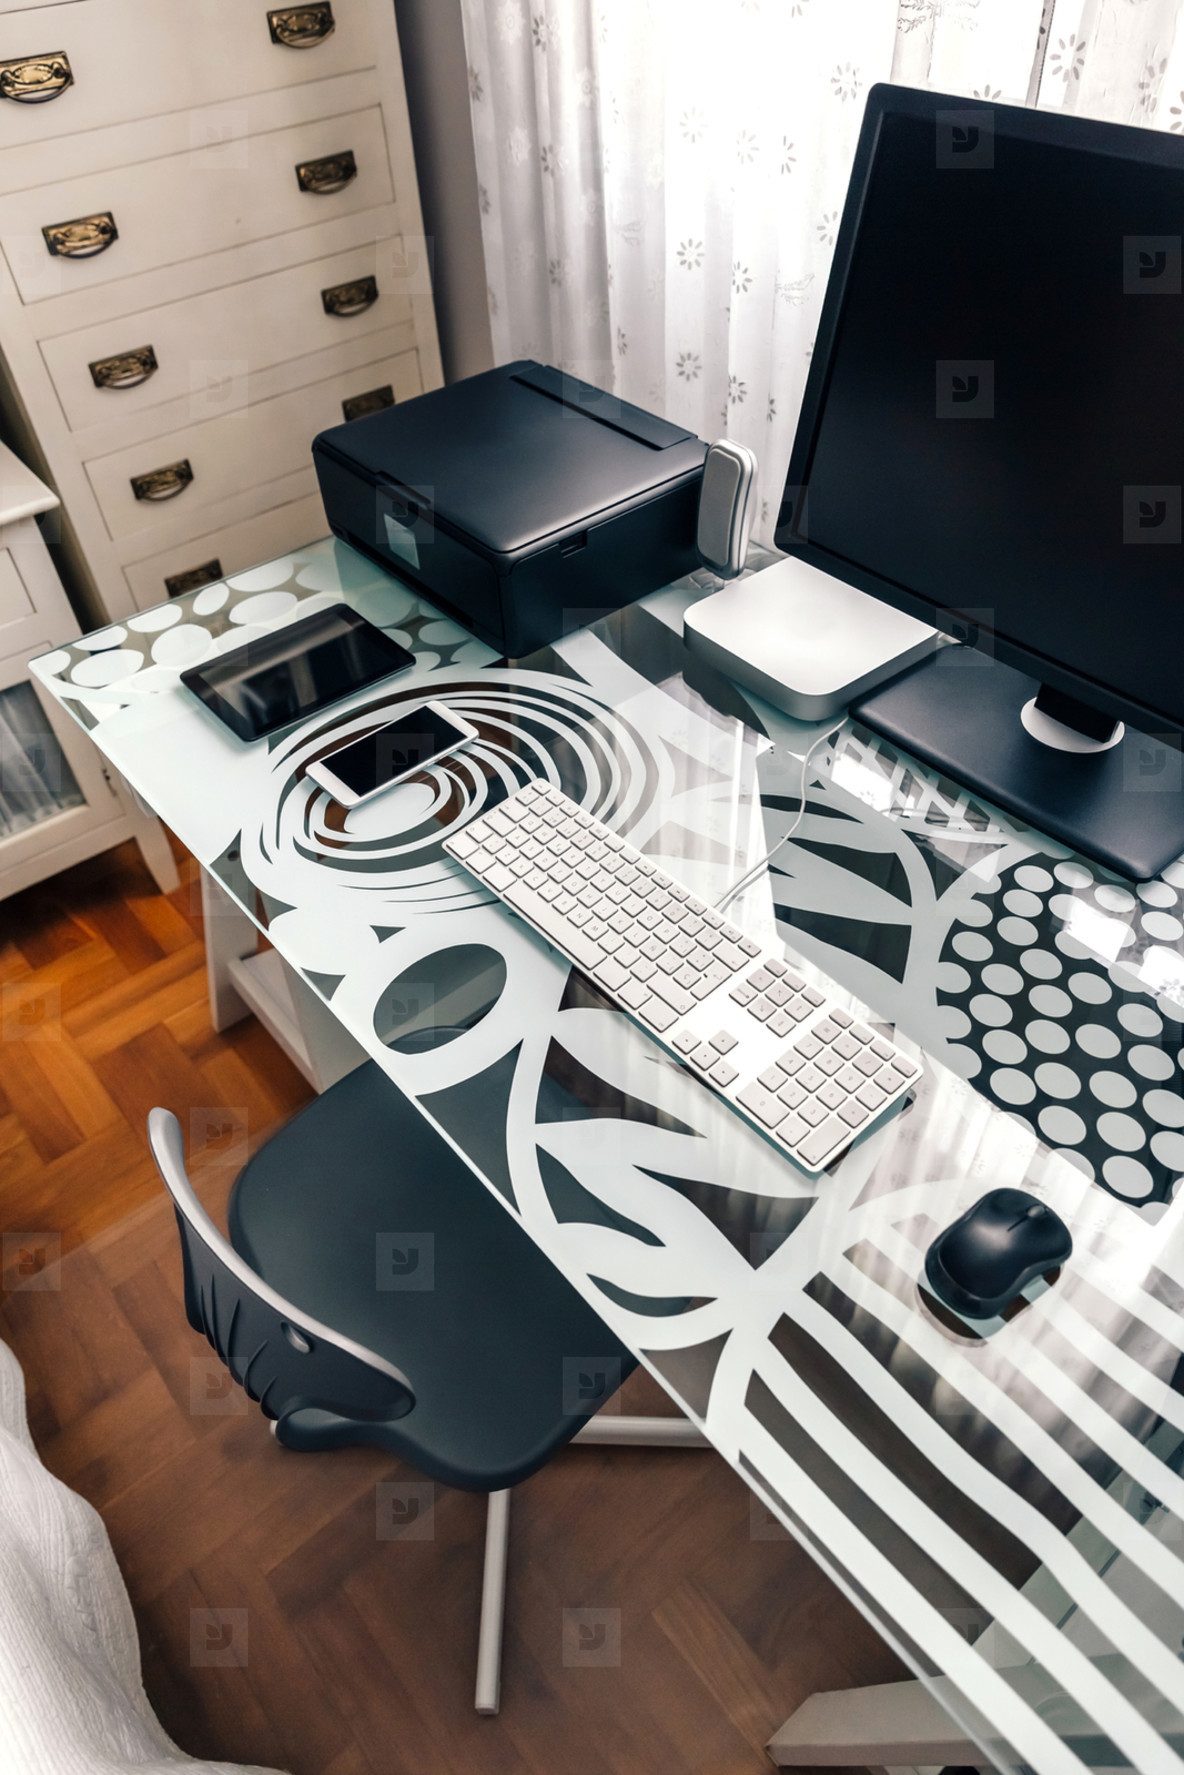 Workstation with table  chair  computer and printer